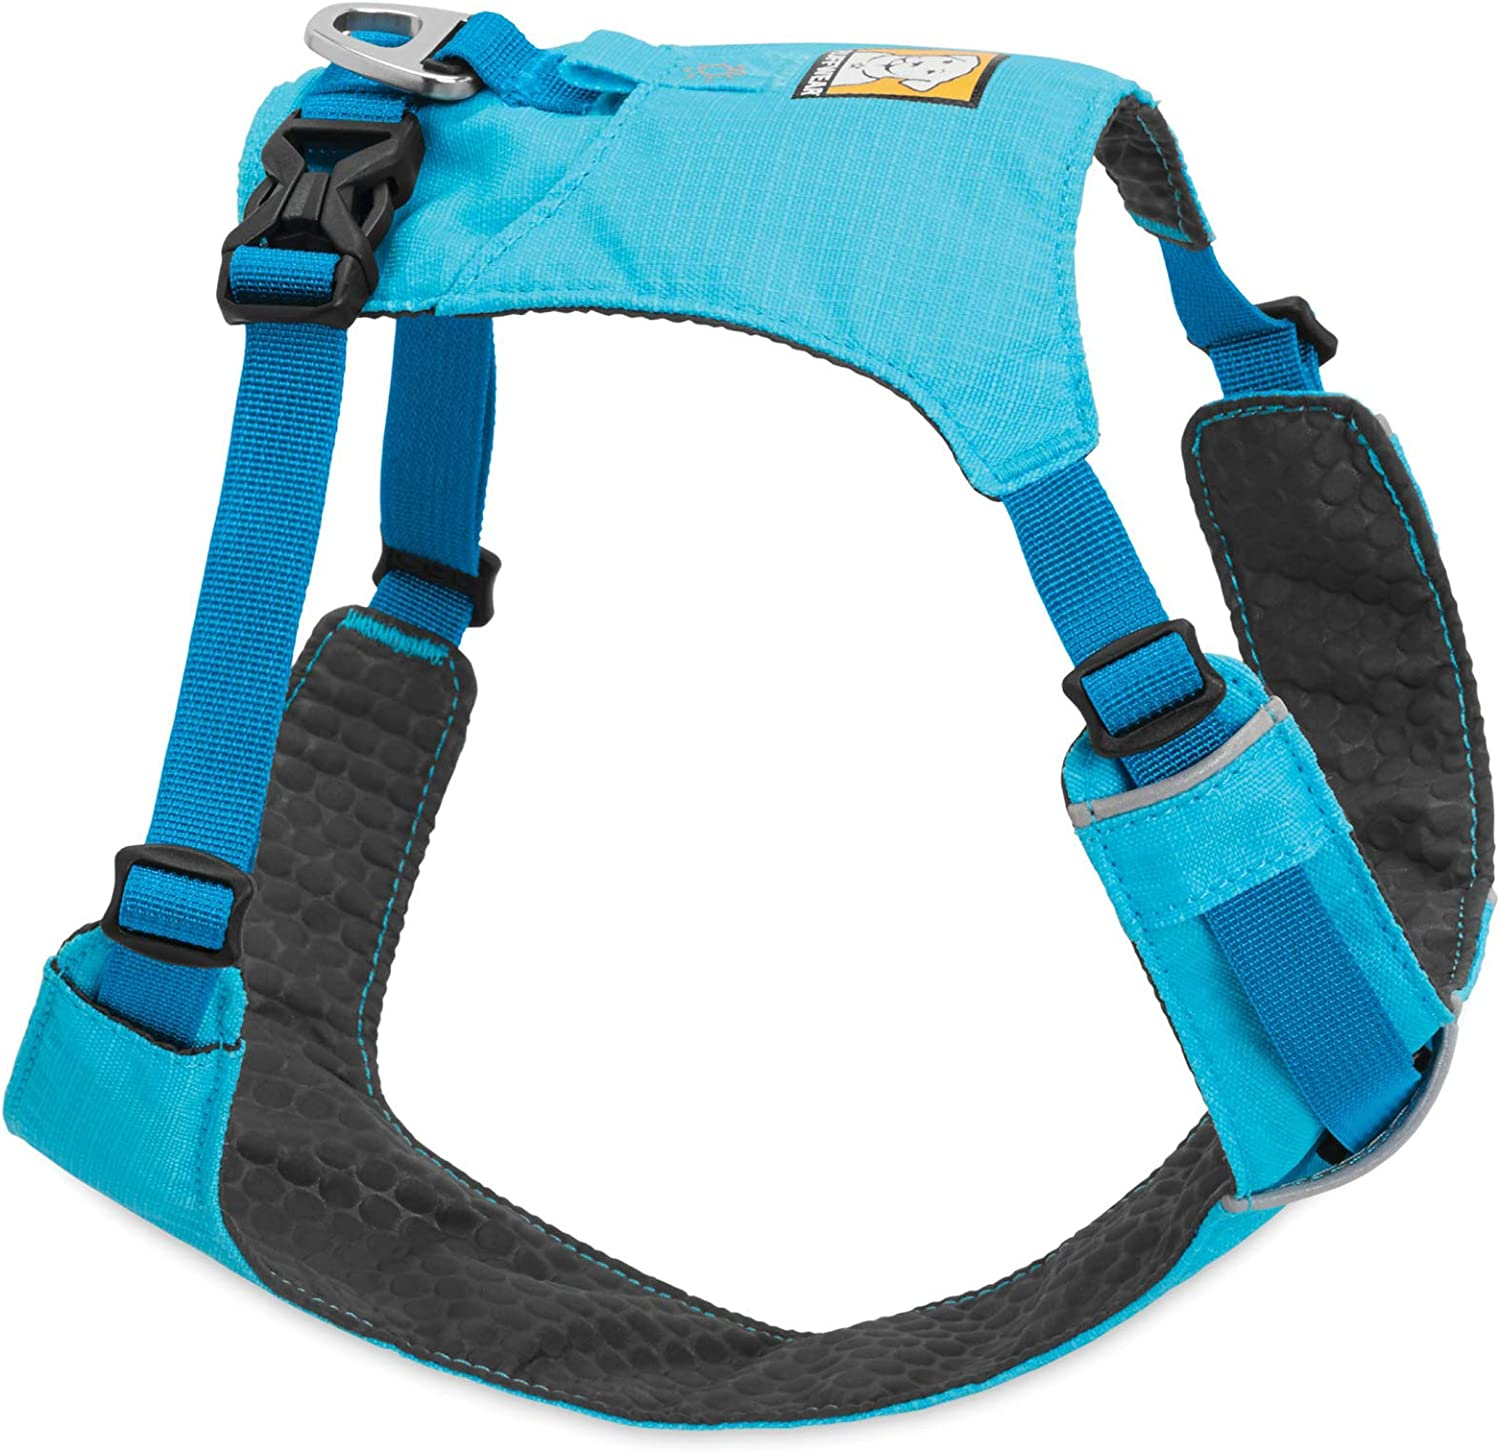 RUFFWEAR - Hi & Light, Everyday Lightweight Dog Harness, Trail Running, Walking, Hiking, All-Day Wear